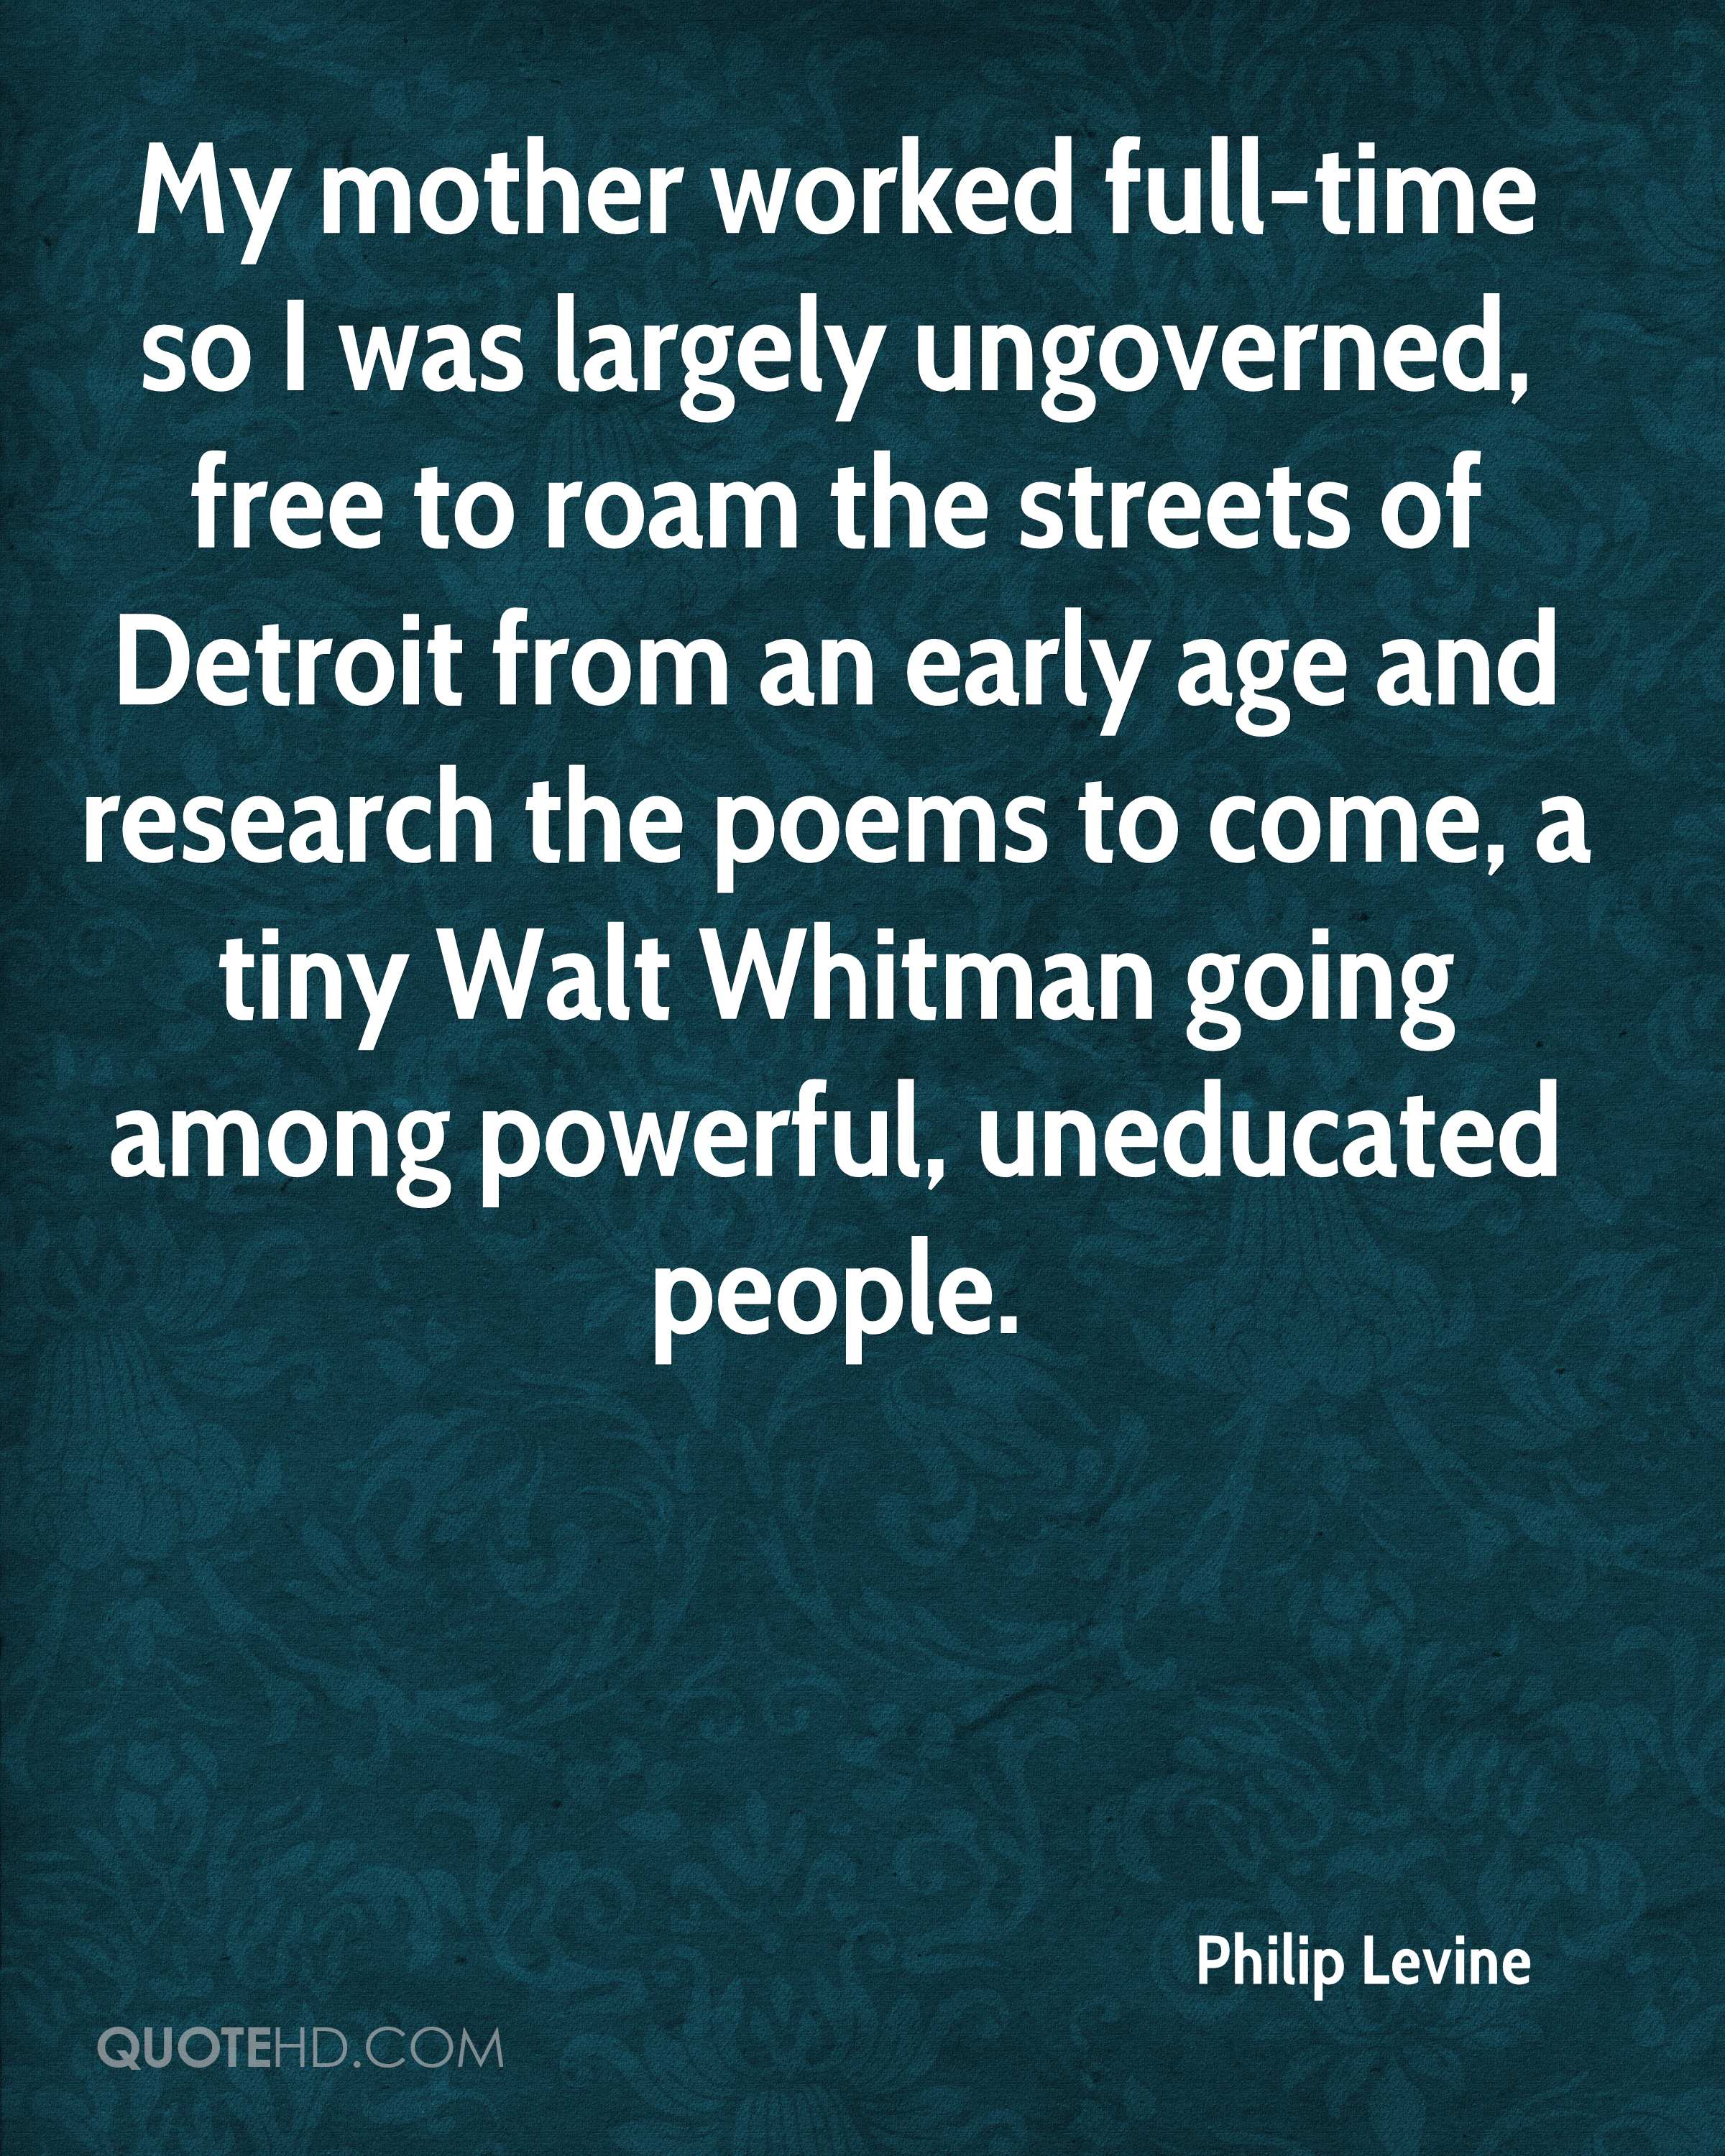 My mother worked full-time so I was largely ungoverned, free to roam the streets of Detroit from an early age and research the poems to come, a tiny Walt Whitman going among powerful, uneducated people.